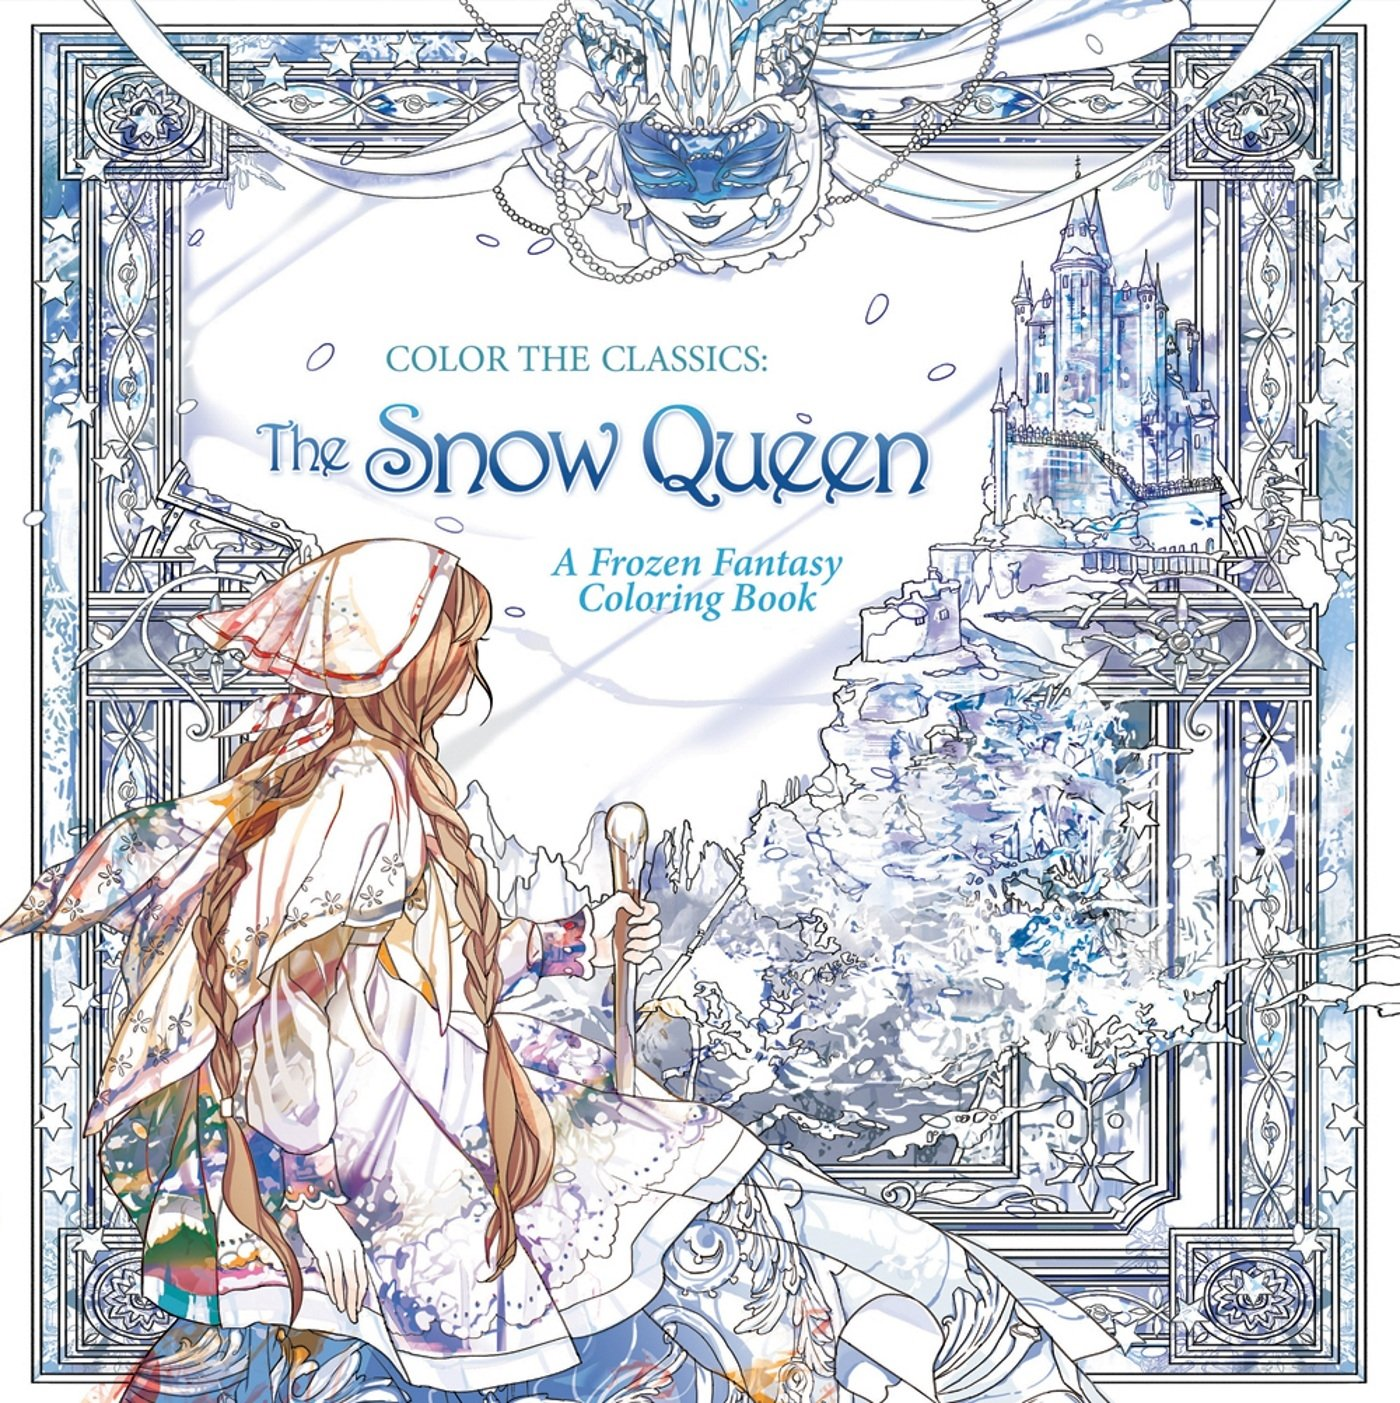 Color the Classics The Snow Queen A Frozen Fantasy Coloring Book